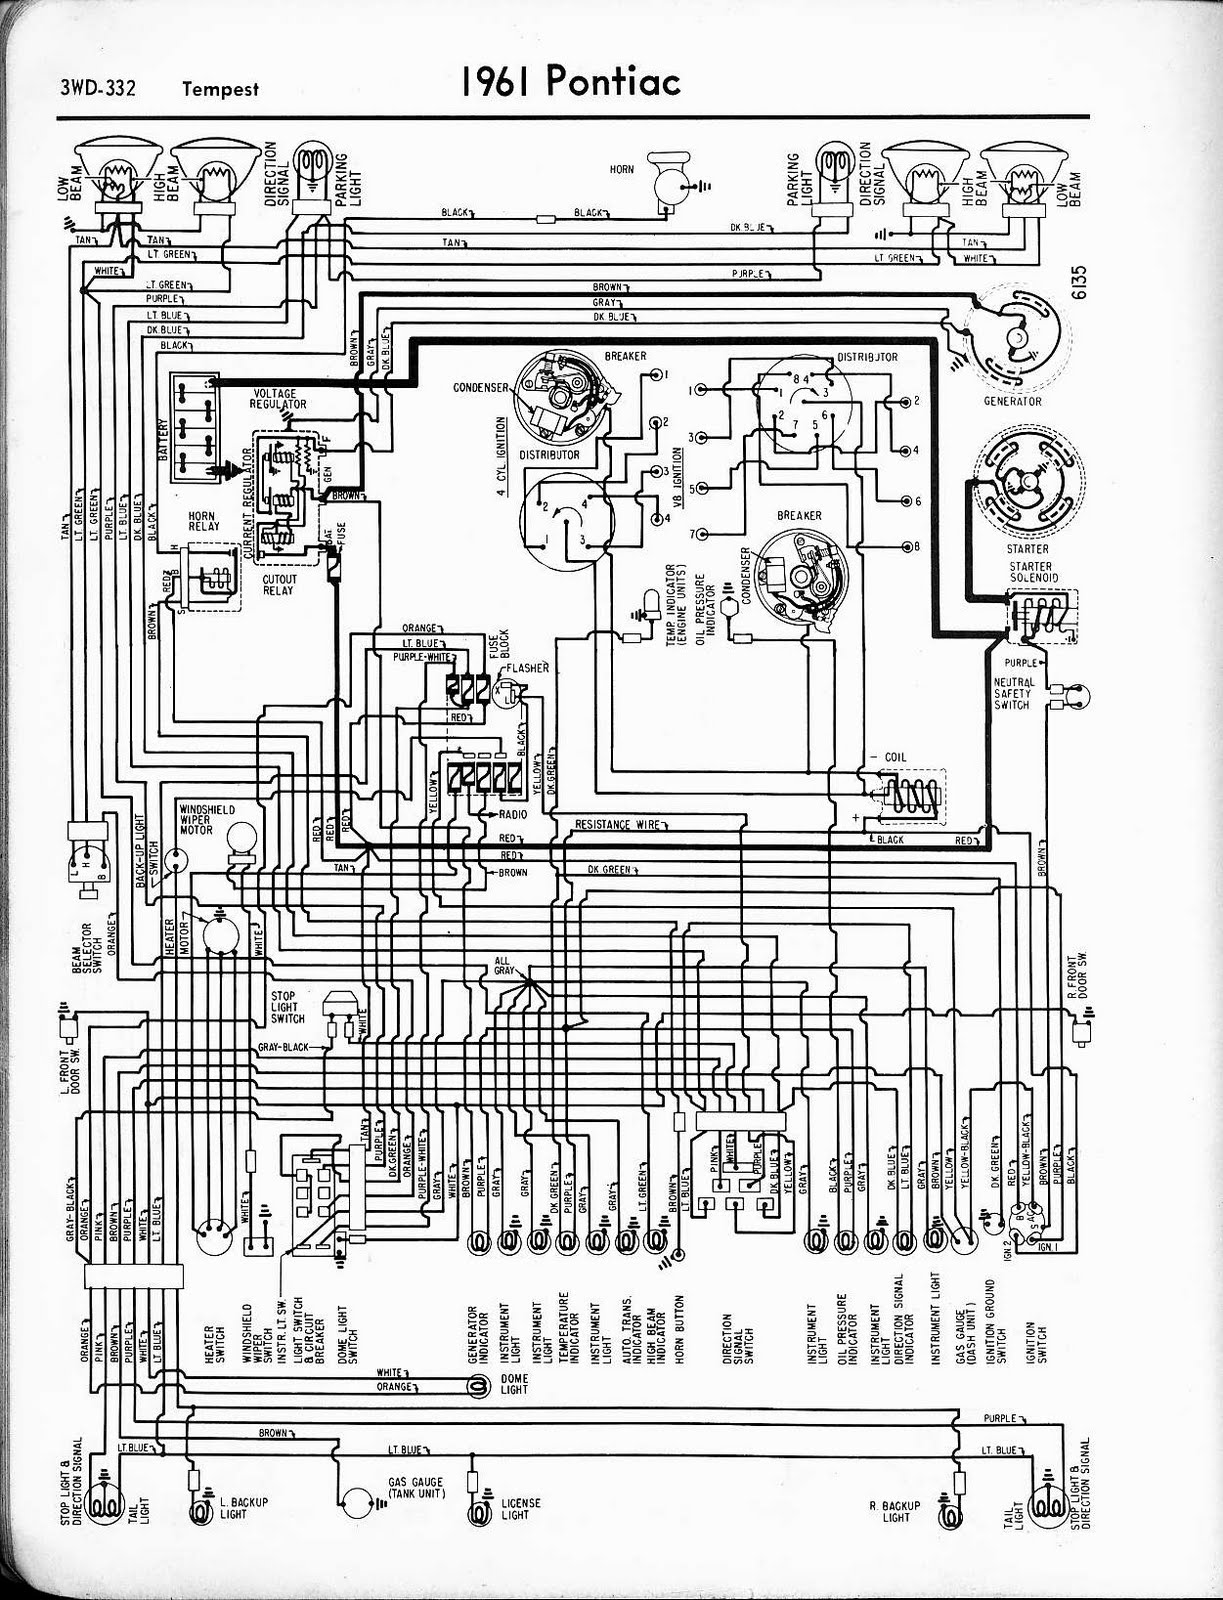 66 gto wiring diagram free download schematic free auto wiring diagram: 1961 pontiac tempest wiring diagram 1967 gto dash wiring diagram free download